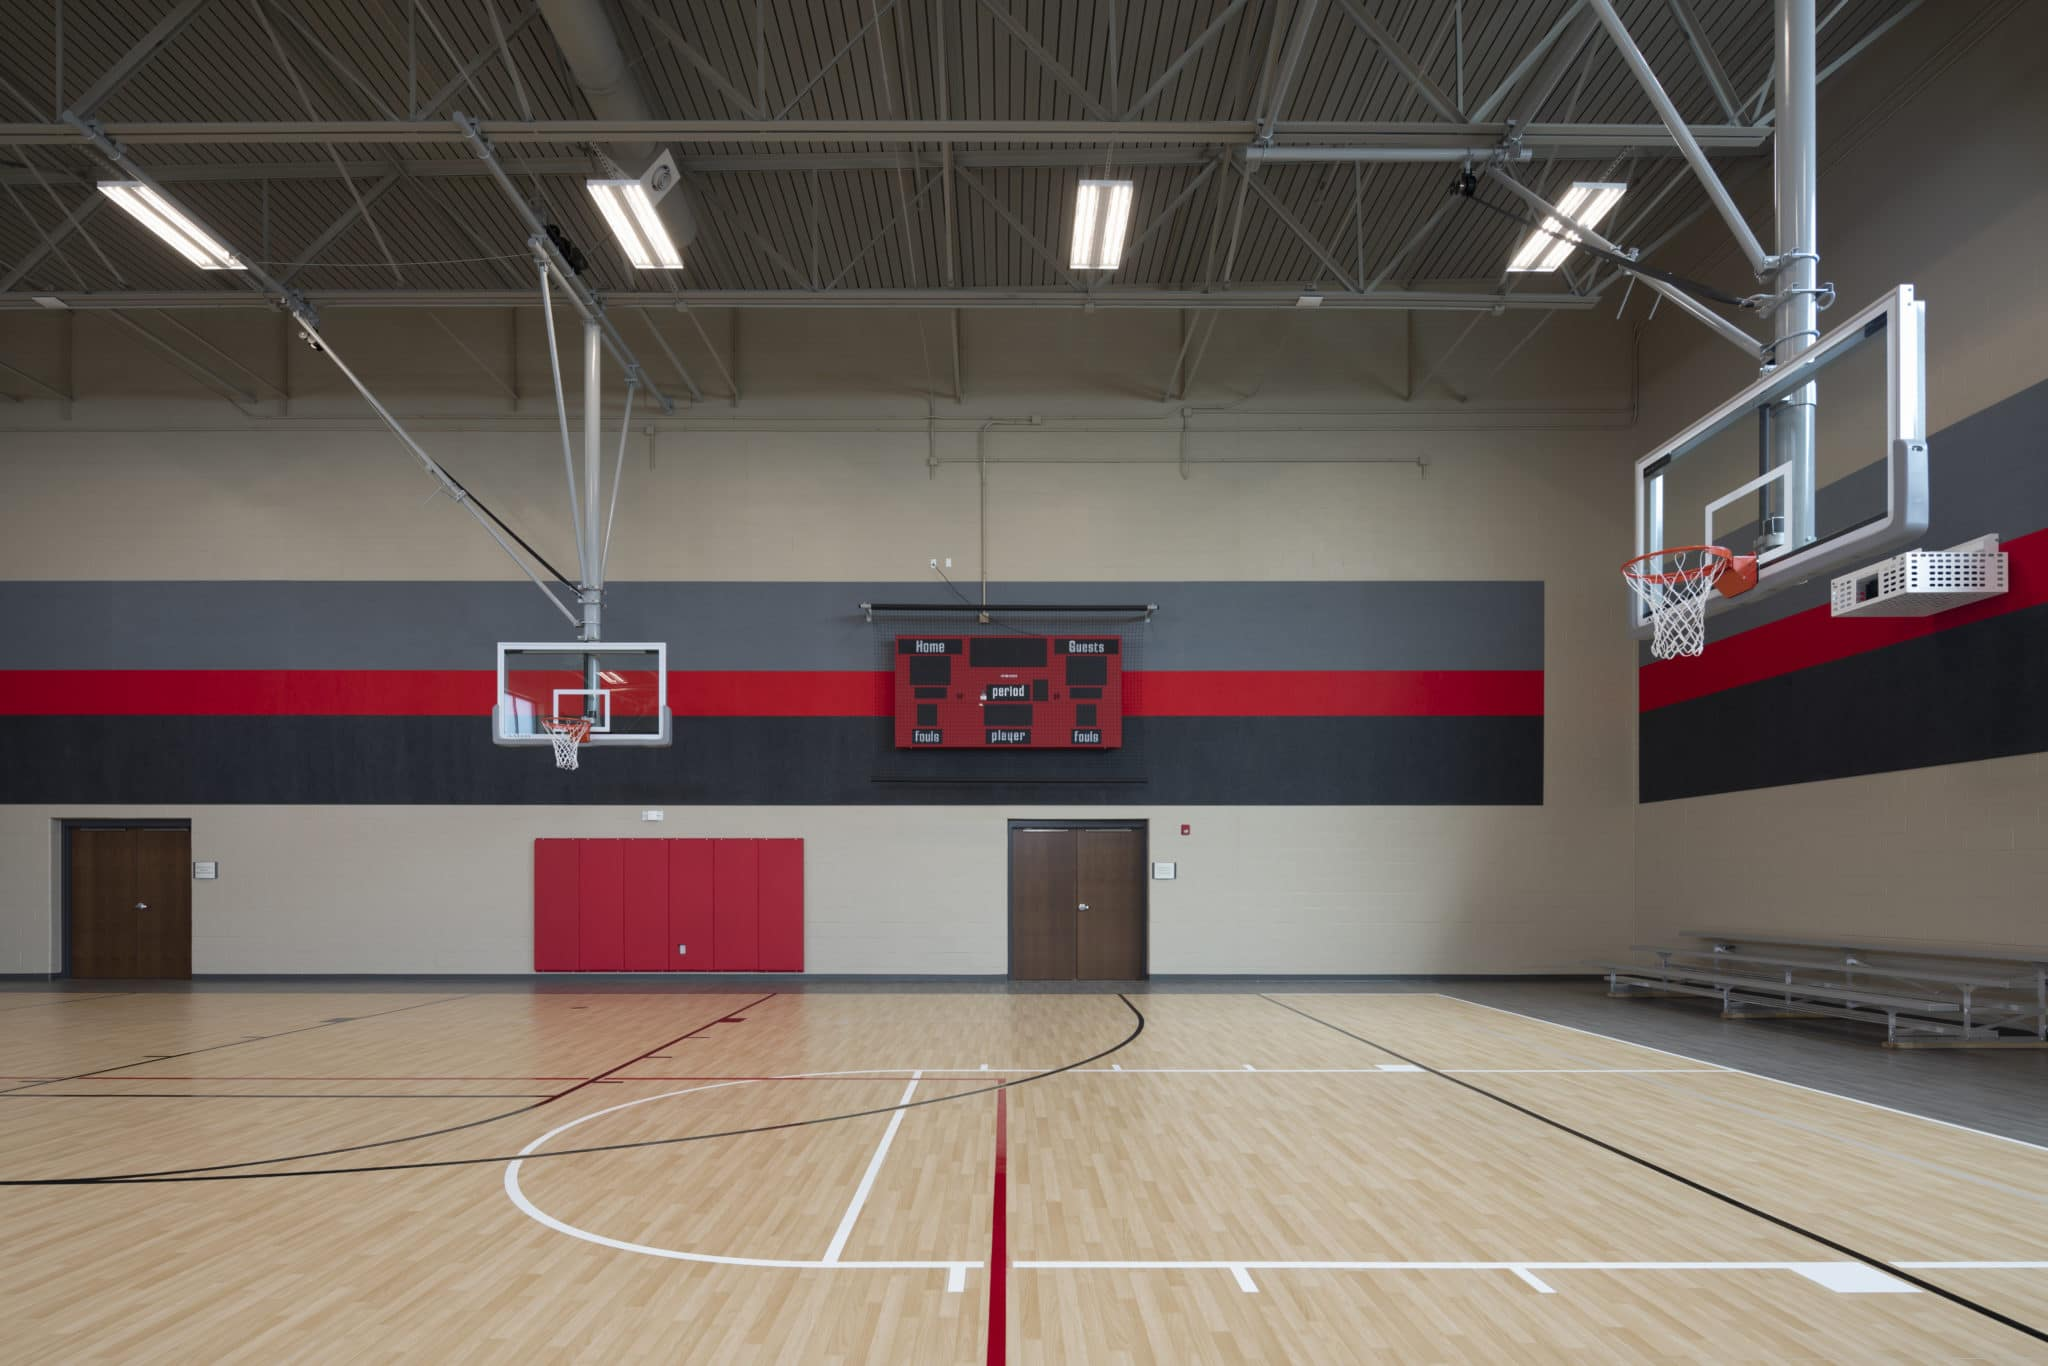 A gymnasium with two basketball hoops and a scoreboard